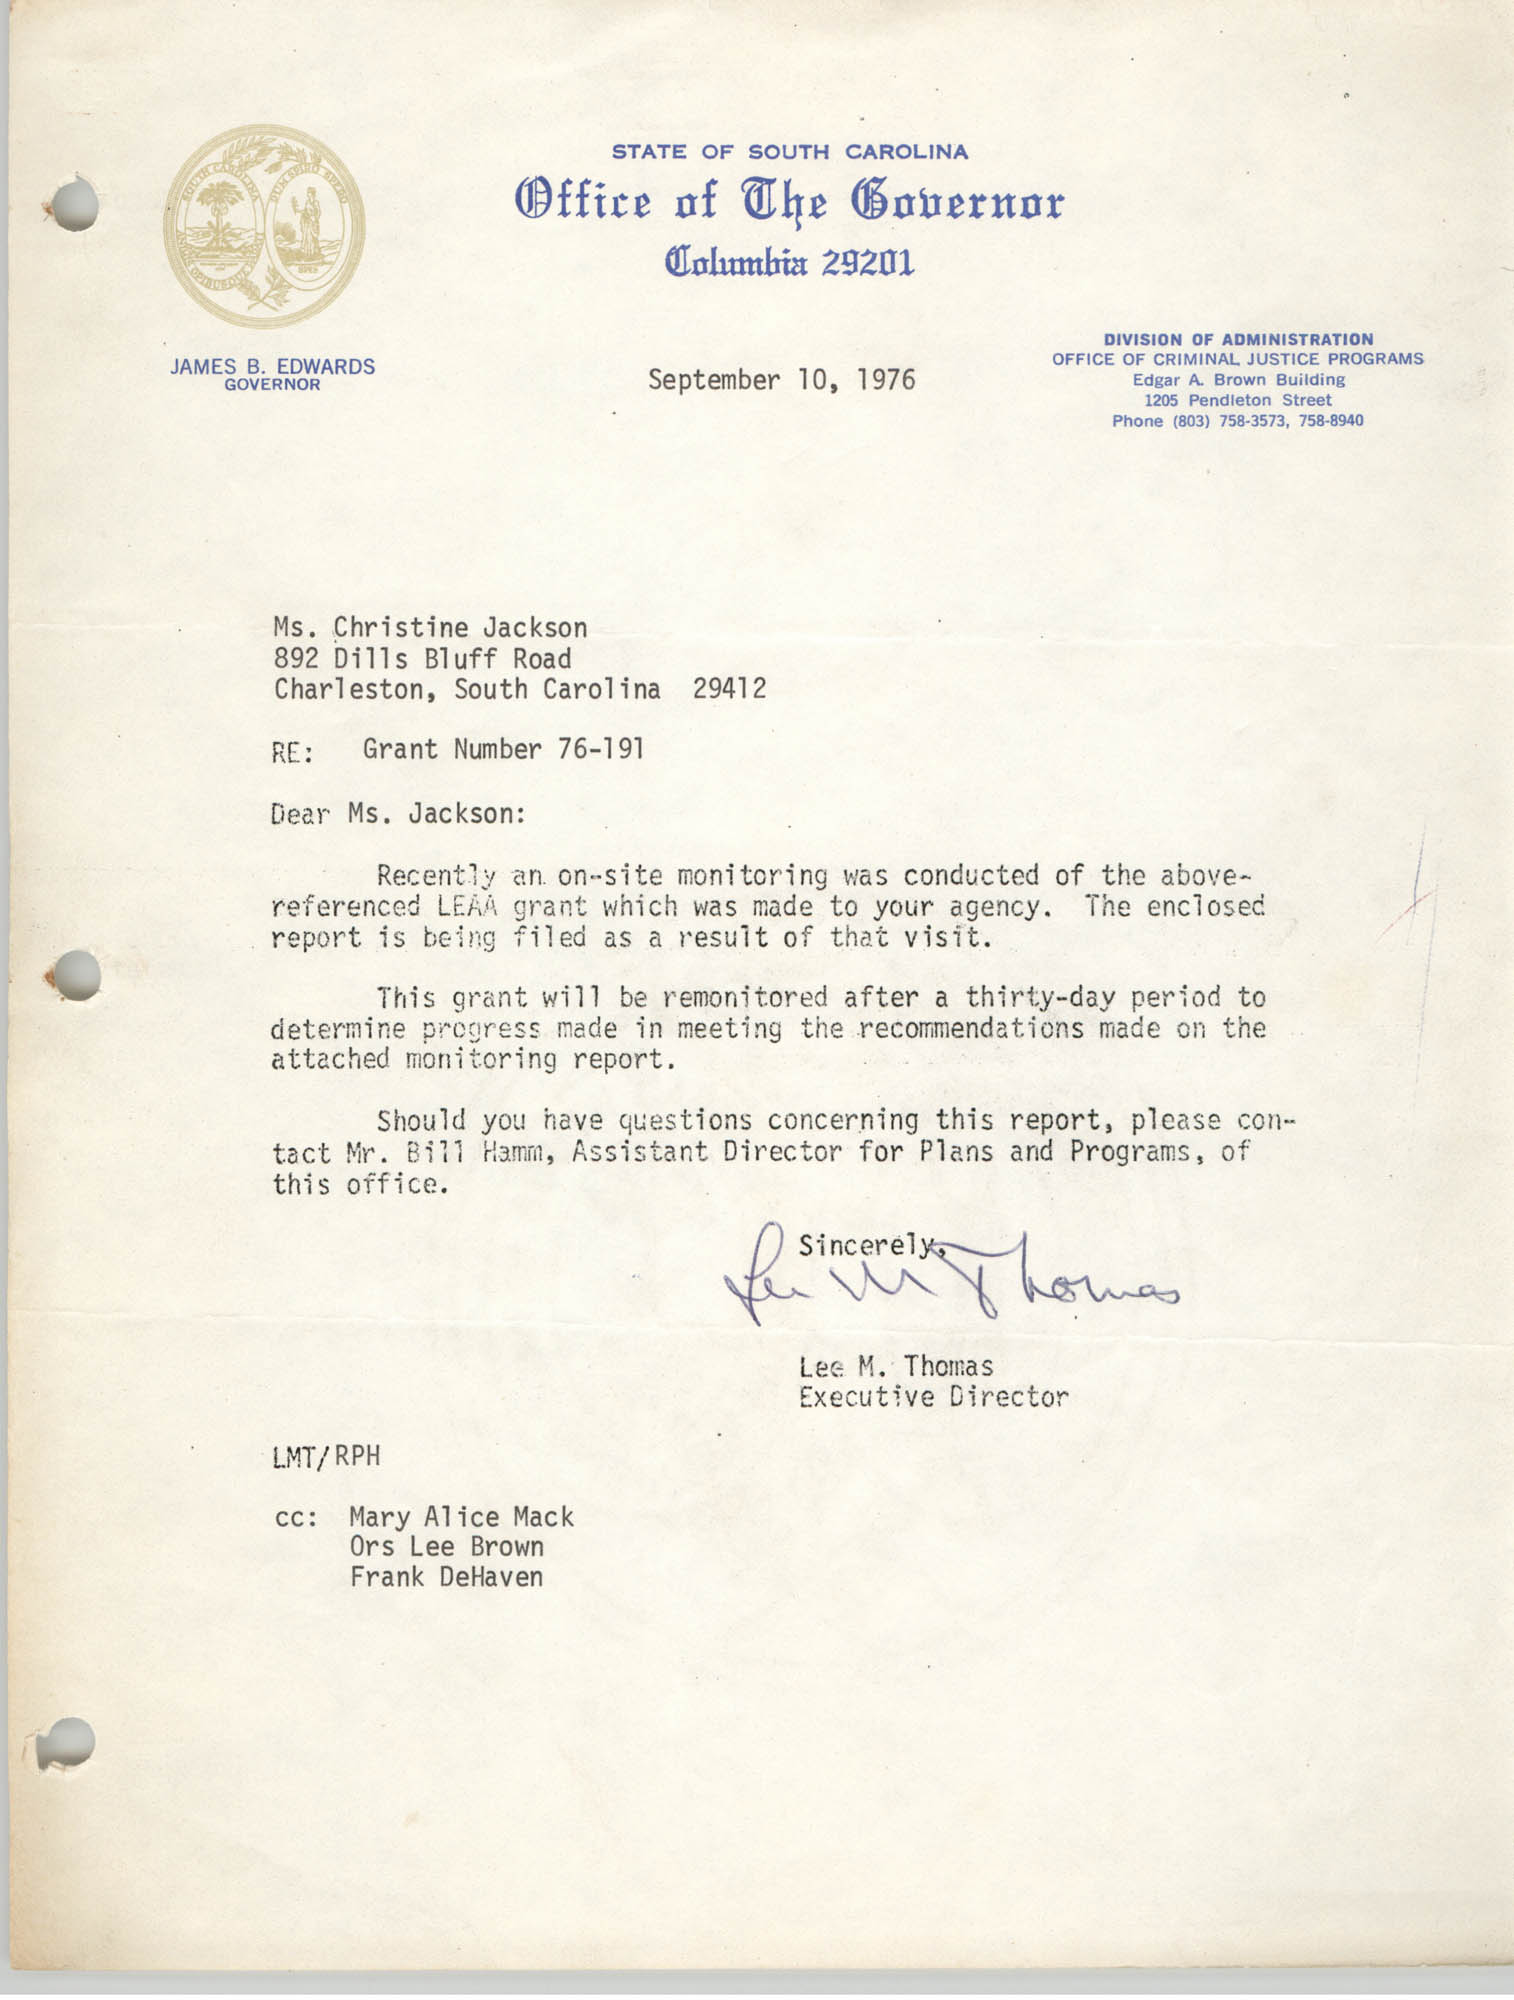 Letter from Lee M. Thomas to Christine Jackson, September 10, 1976